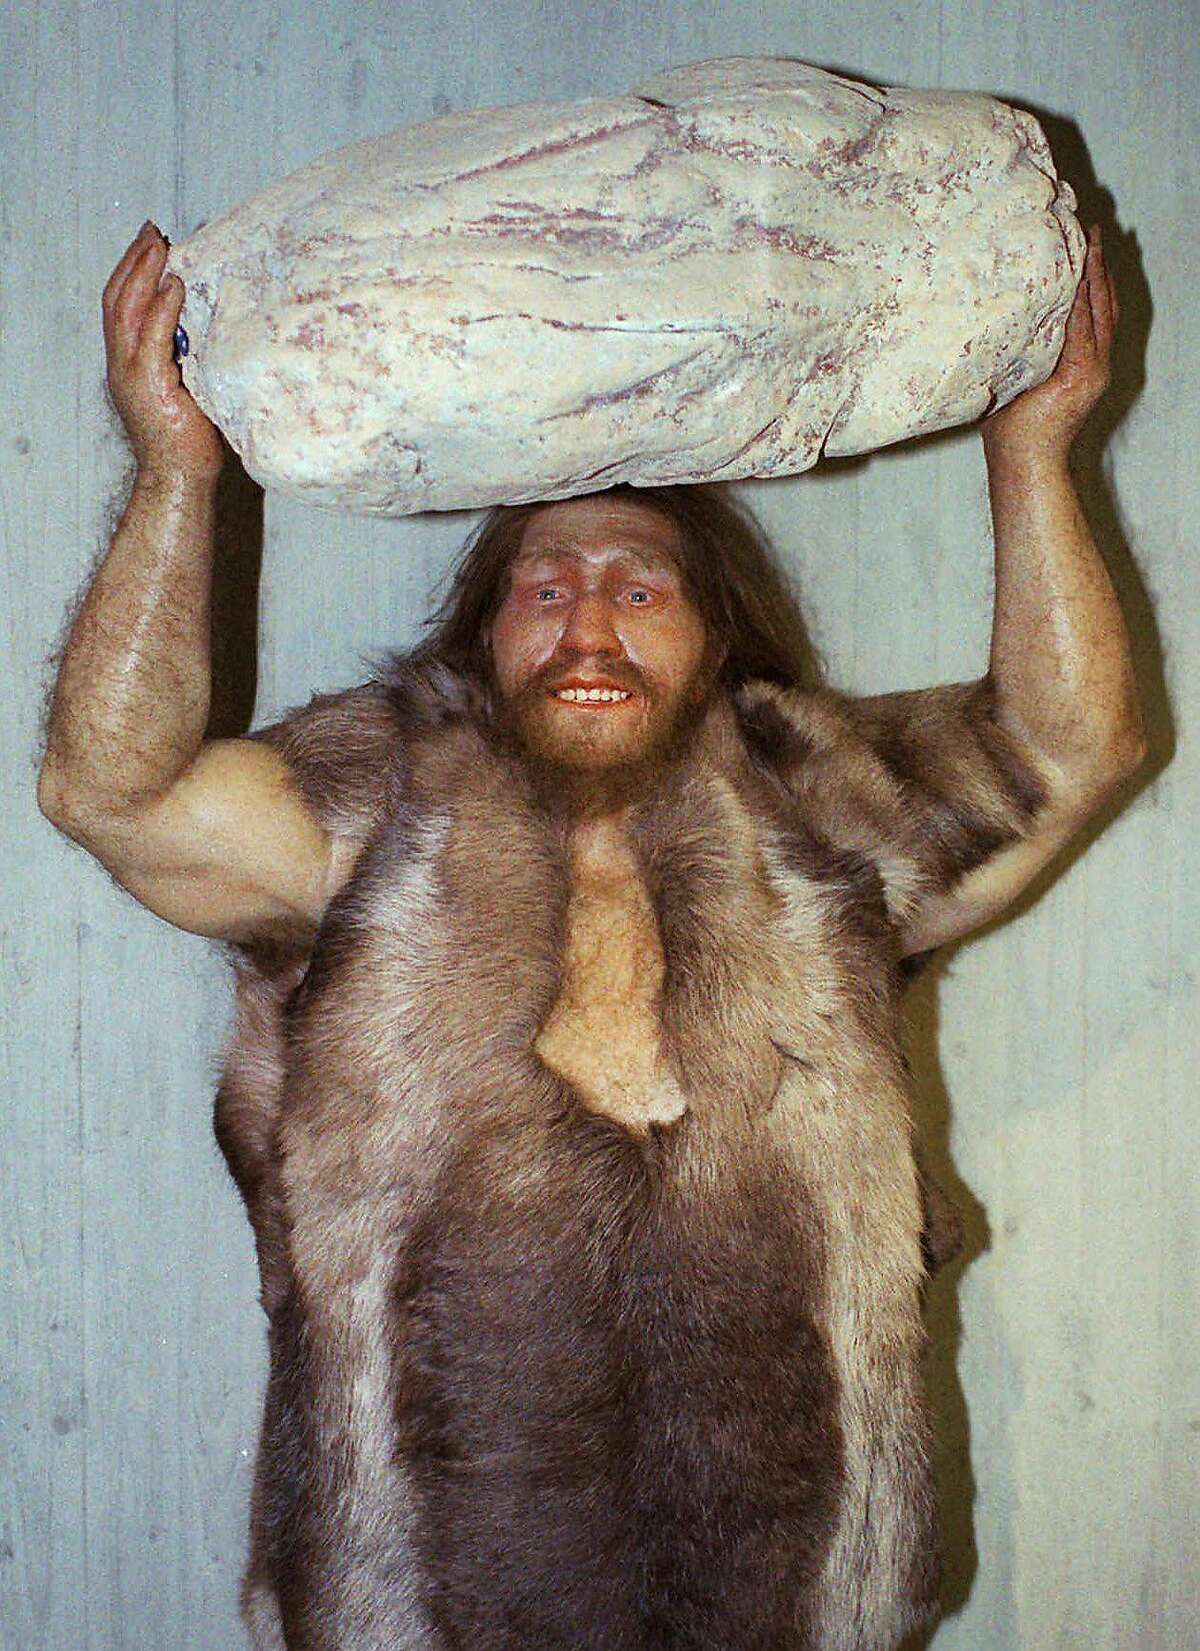 FILE - This Oct. 1996 file photo shows a replica of a Neanderthal man at the Neanderthal museum in Mettmann, western Germany. Next time you call someone a Neanderthal, better look in a mirror. Much of the genes that help determine most people's skin and hair are much more Neanderthal than not, according to two new studies that look at the DNA fossils hidden in the modern human genome. Scientists isolated the parts of the non-African modern human genetic blueprint that still contain Neanderthal remnants. Barely more than 1 percent comes from 50,000 years ago when modern humans leaving Africa mated with the soon-to-be-extinct Neanderthals. (AP Photo/Heinz Ducklau, File)